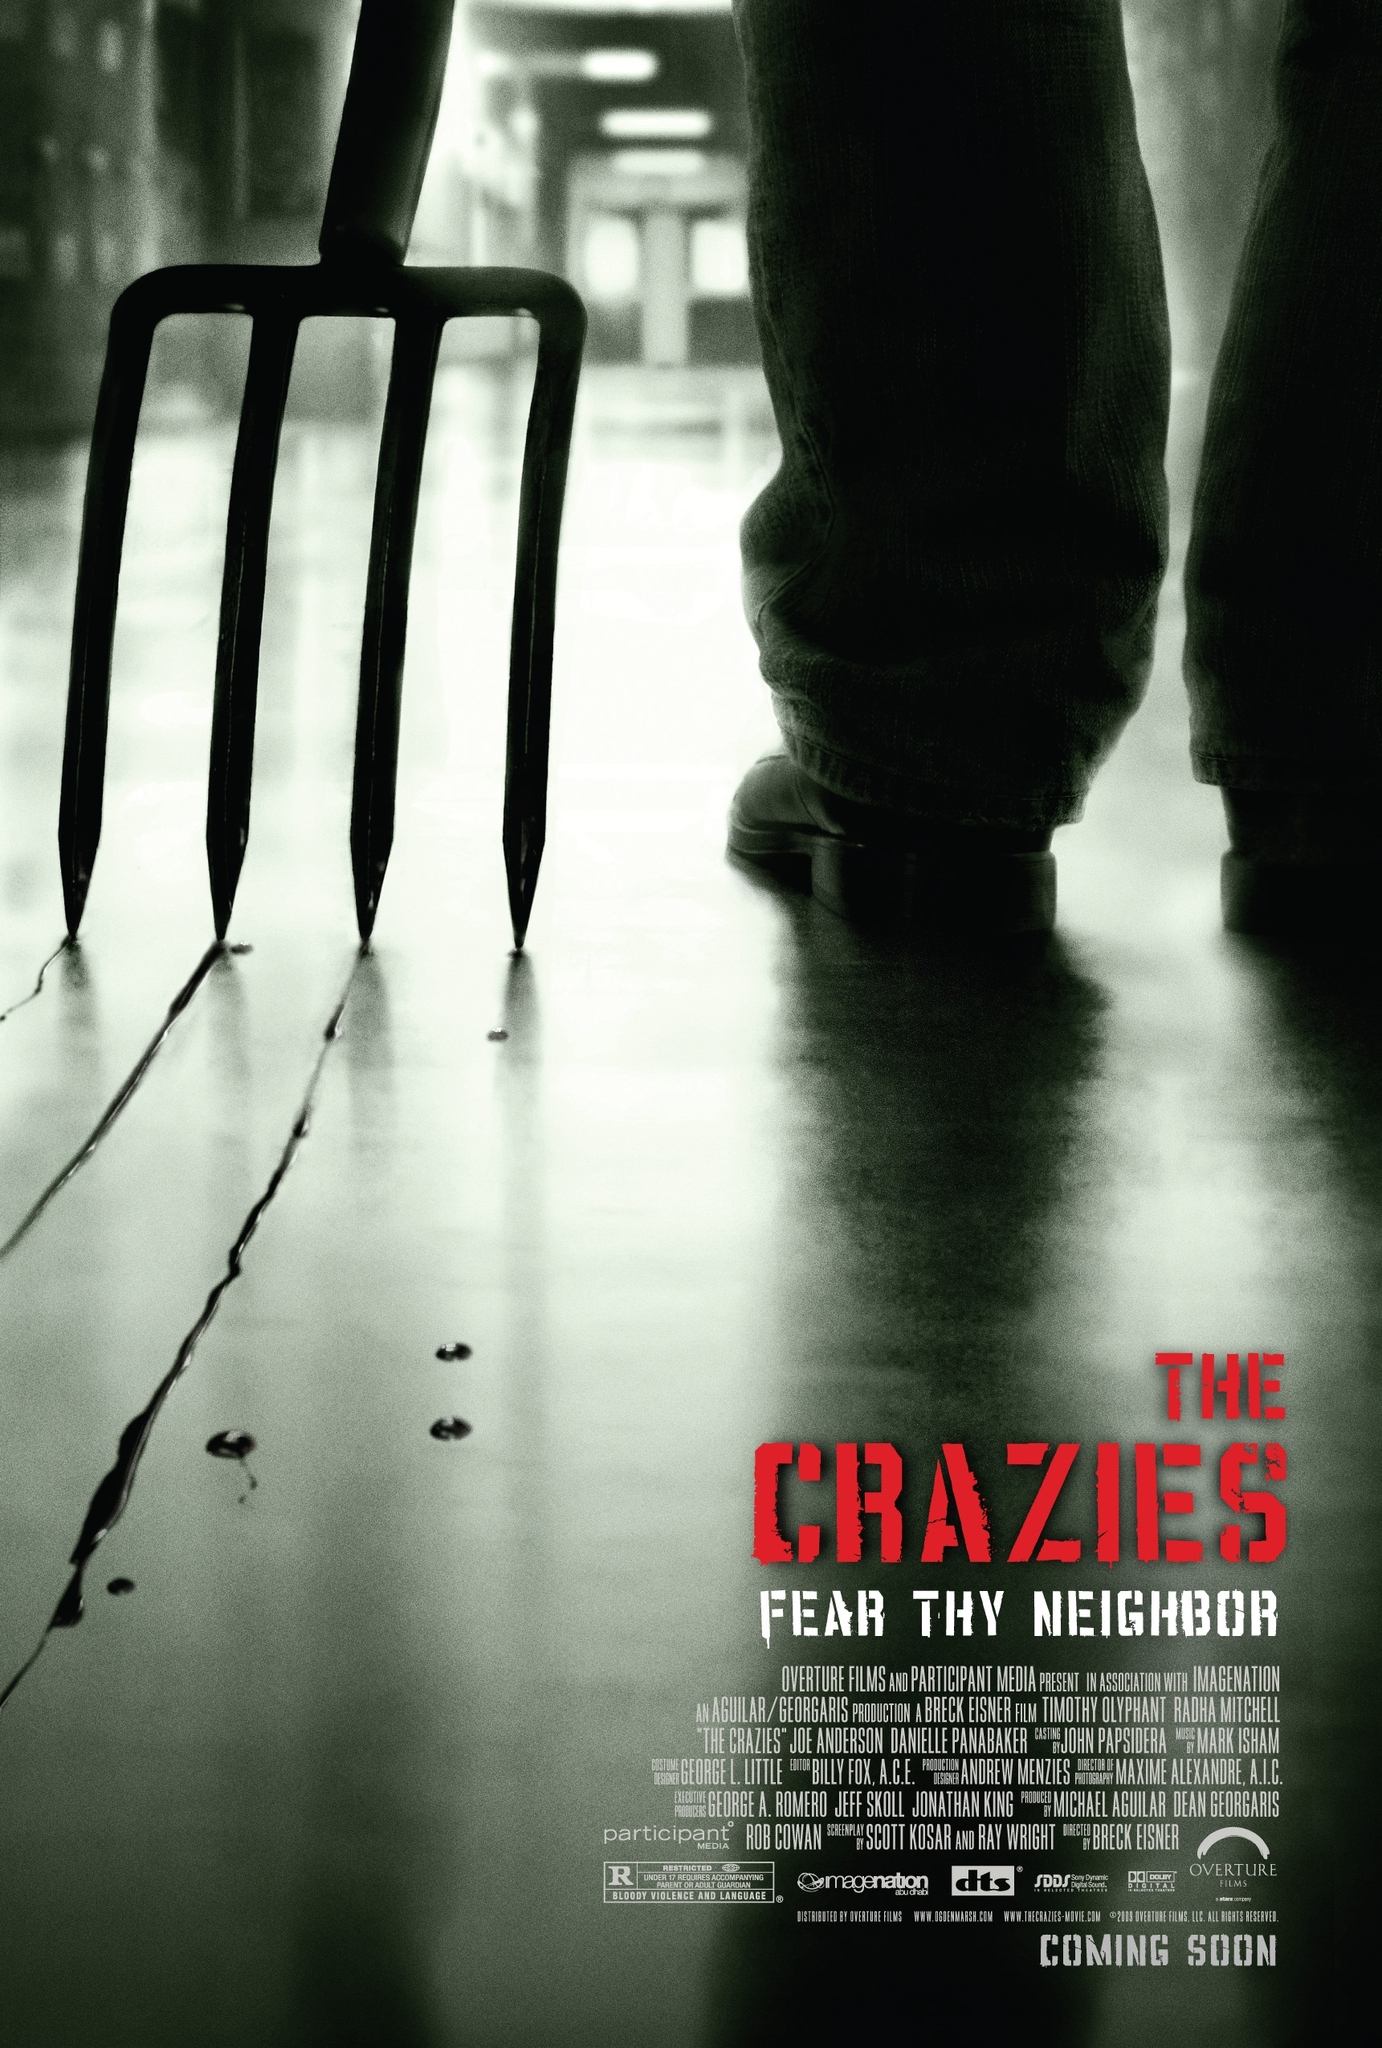 The Crazies (2010) - IMDb on white house haunted house, white house helicopter, white house guns, white house shooting, white house papercraft, white house terrorist, white house bomb, white house secret passageways, white house makeover, white house christmas special, white house minecraft, white house sword, white house maze, white house coloring, white house ww2, white house hauntings, white house haunted history, white house conspiracies,